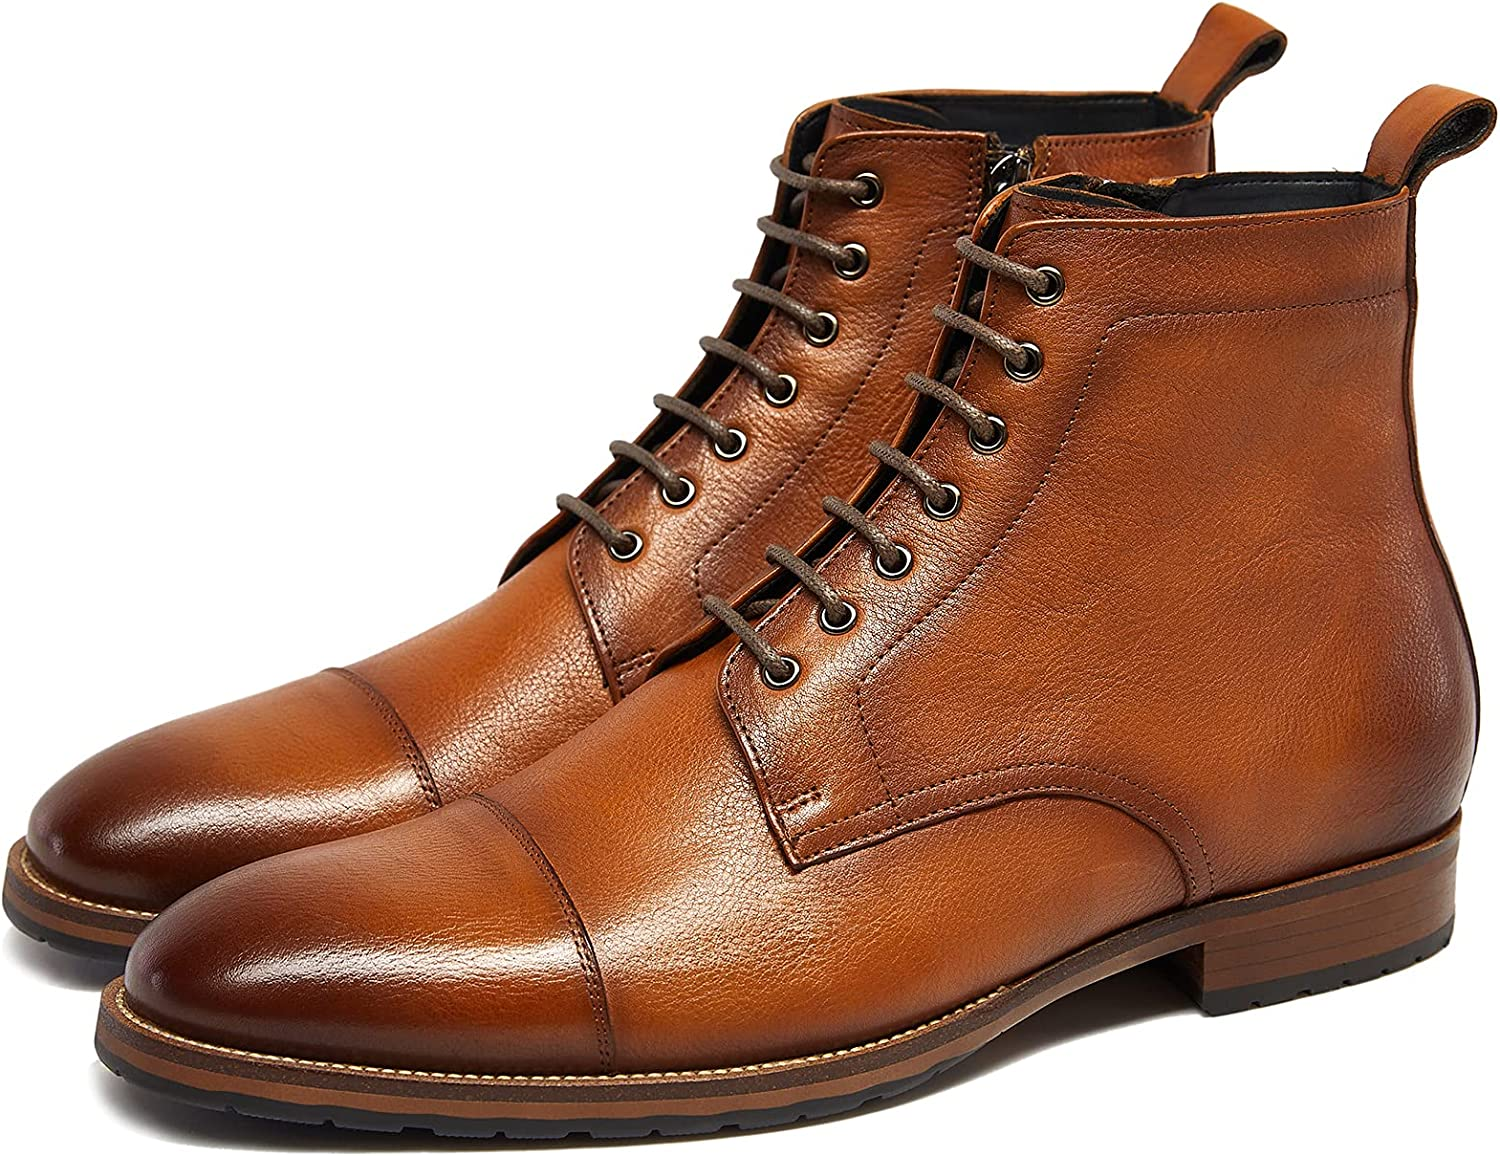 lowest price Mens motorcycle boots genuine leather Limited price combat casual d Dress work